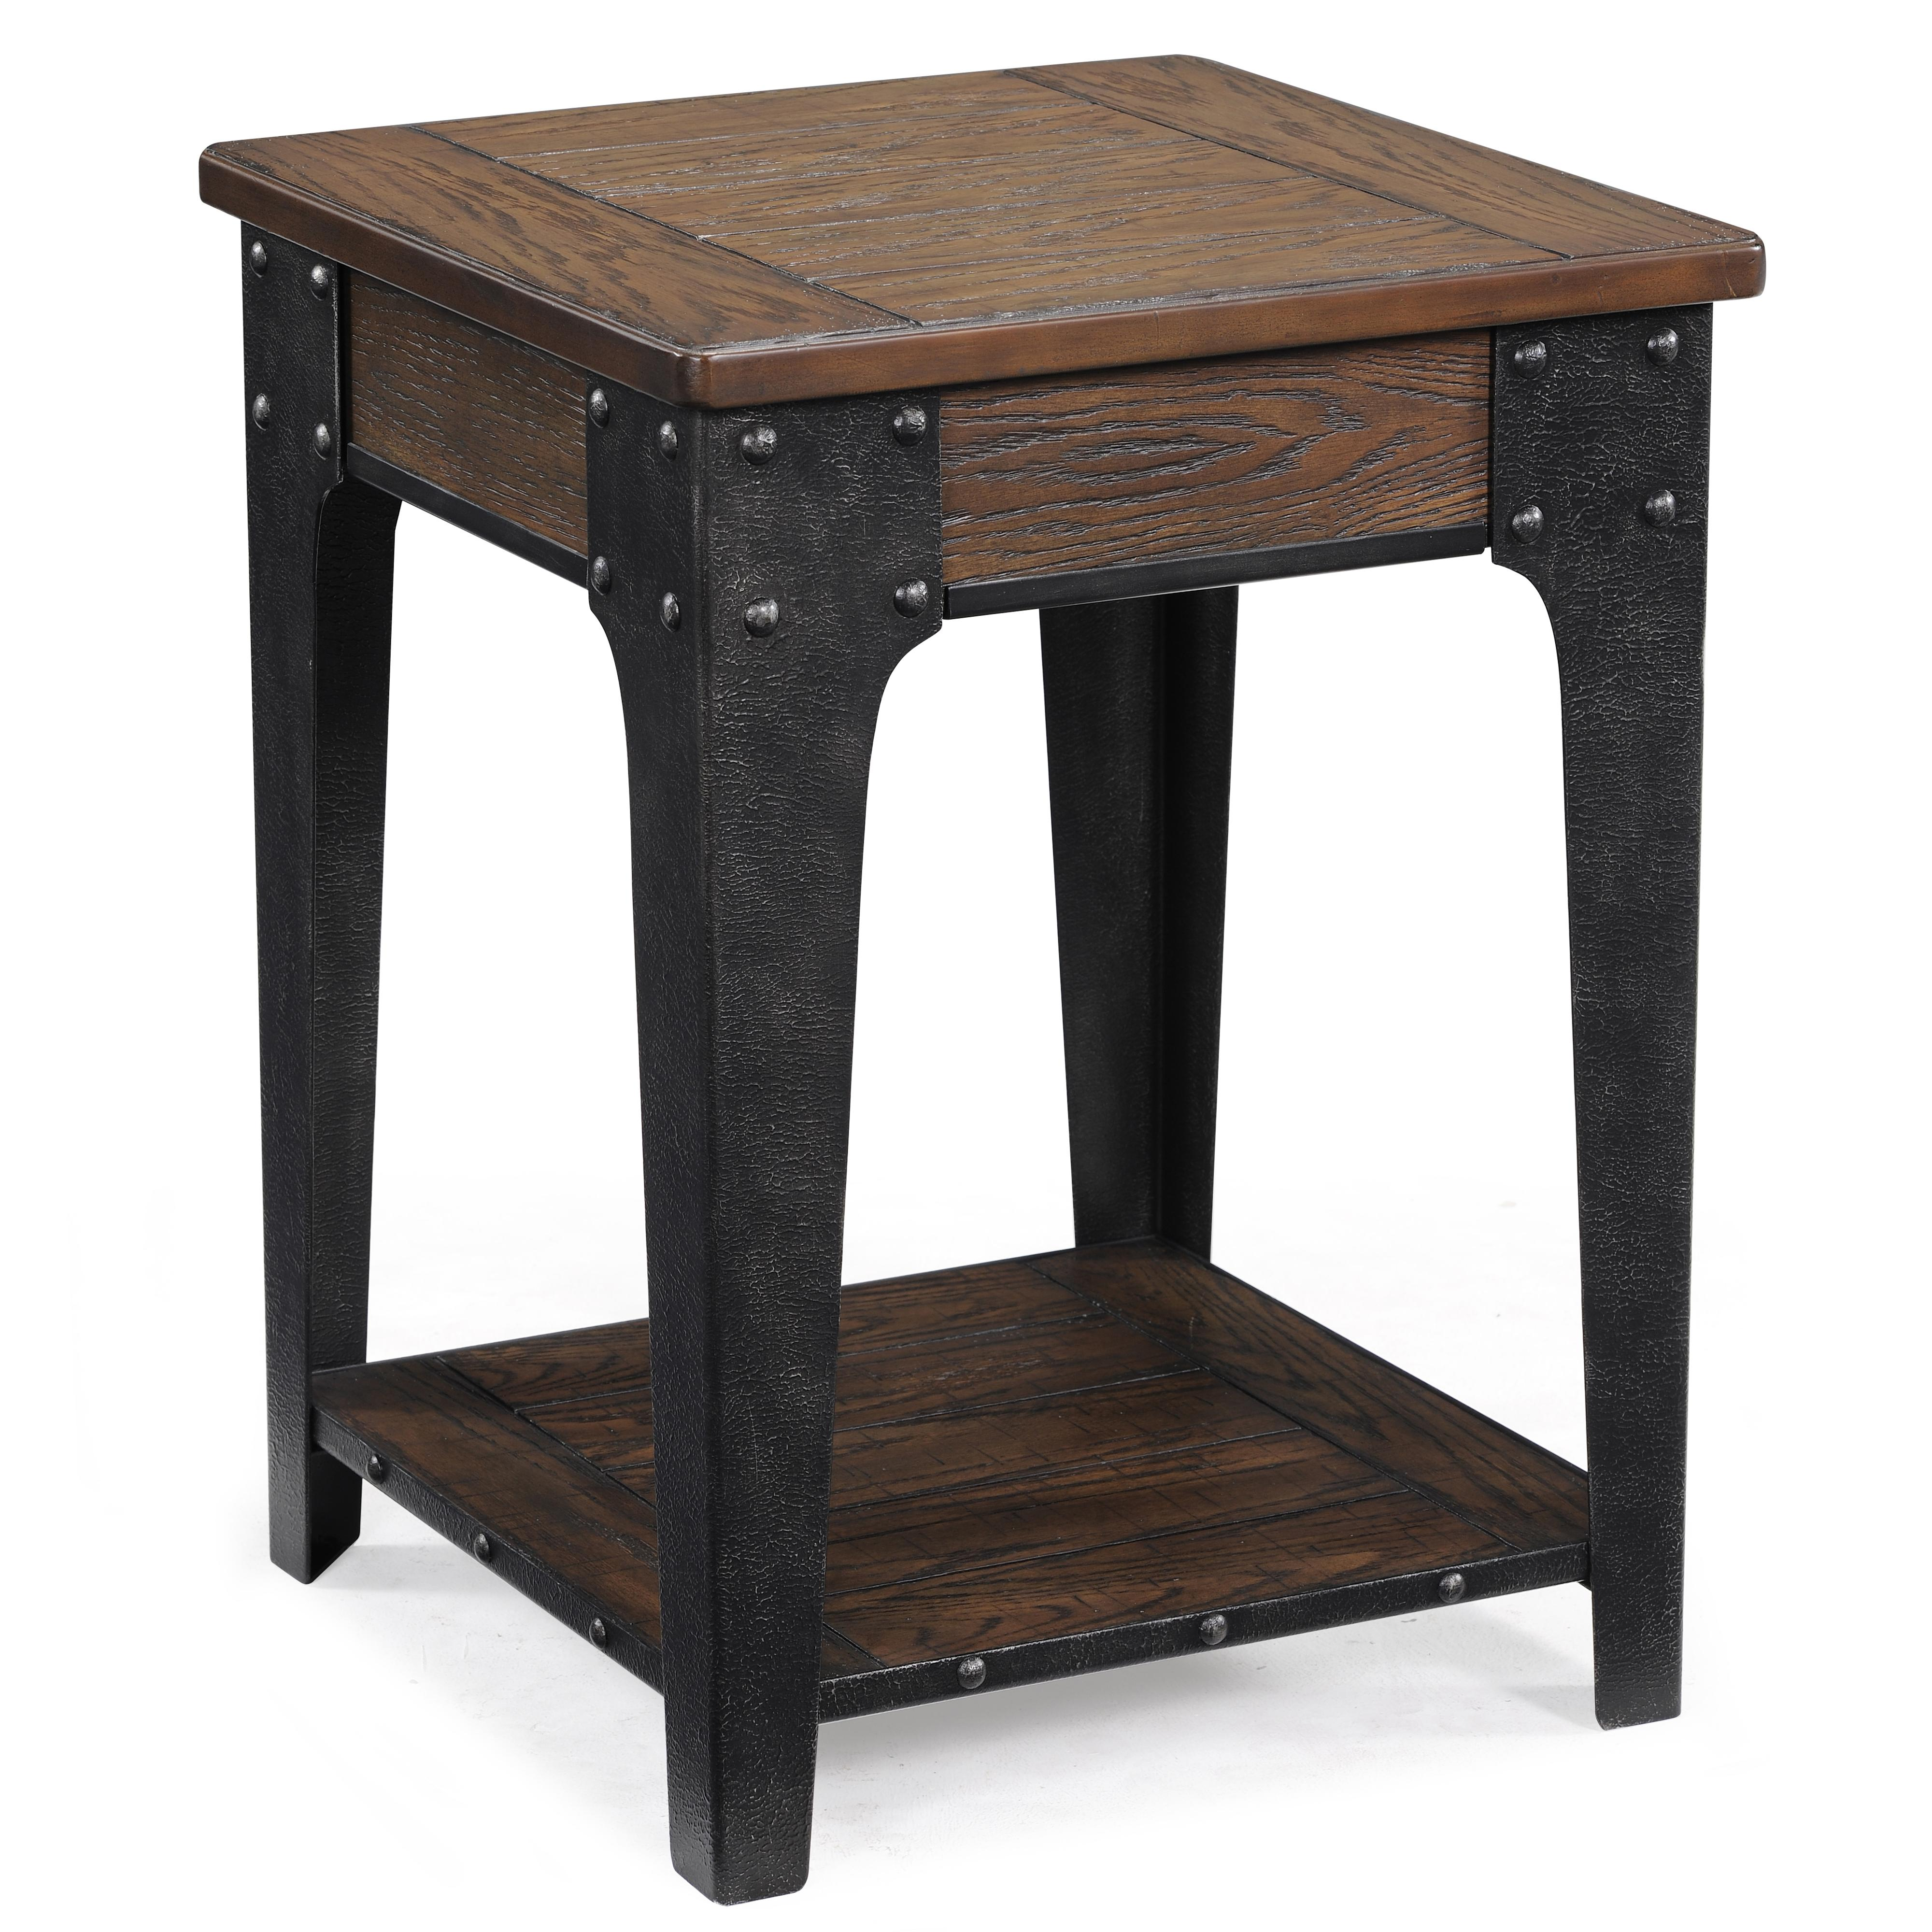 magnussen home lakehurst square accent table olinde furniture products color living spaces tables small stand hampton bay spring haven best decor websites round vinyl covers